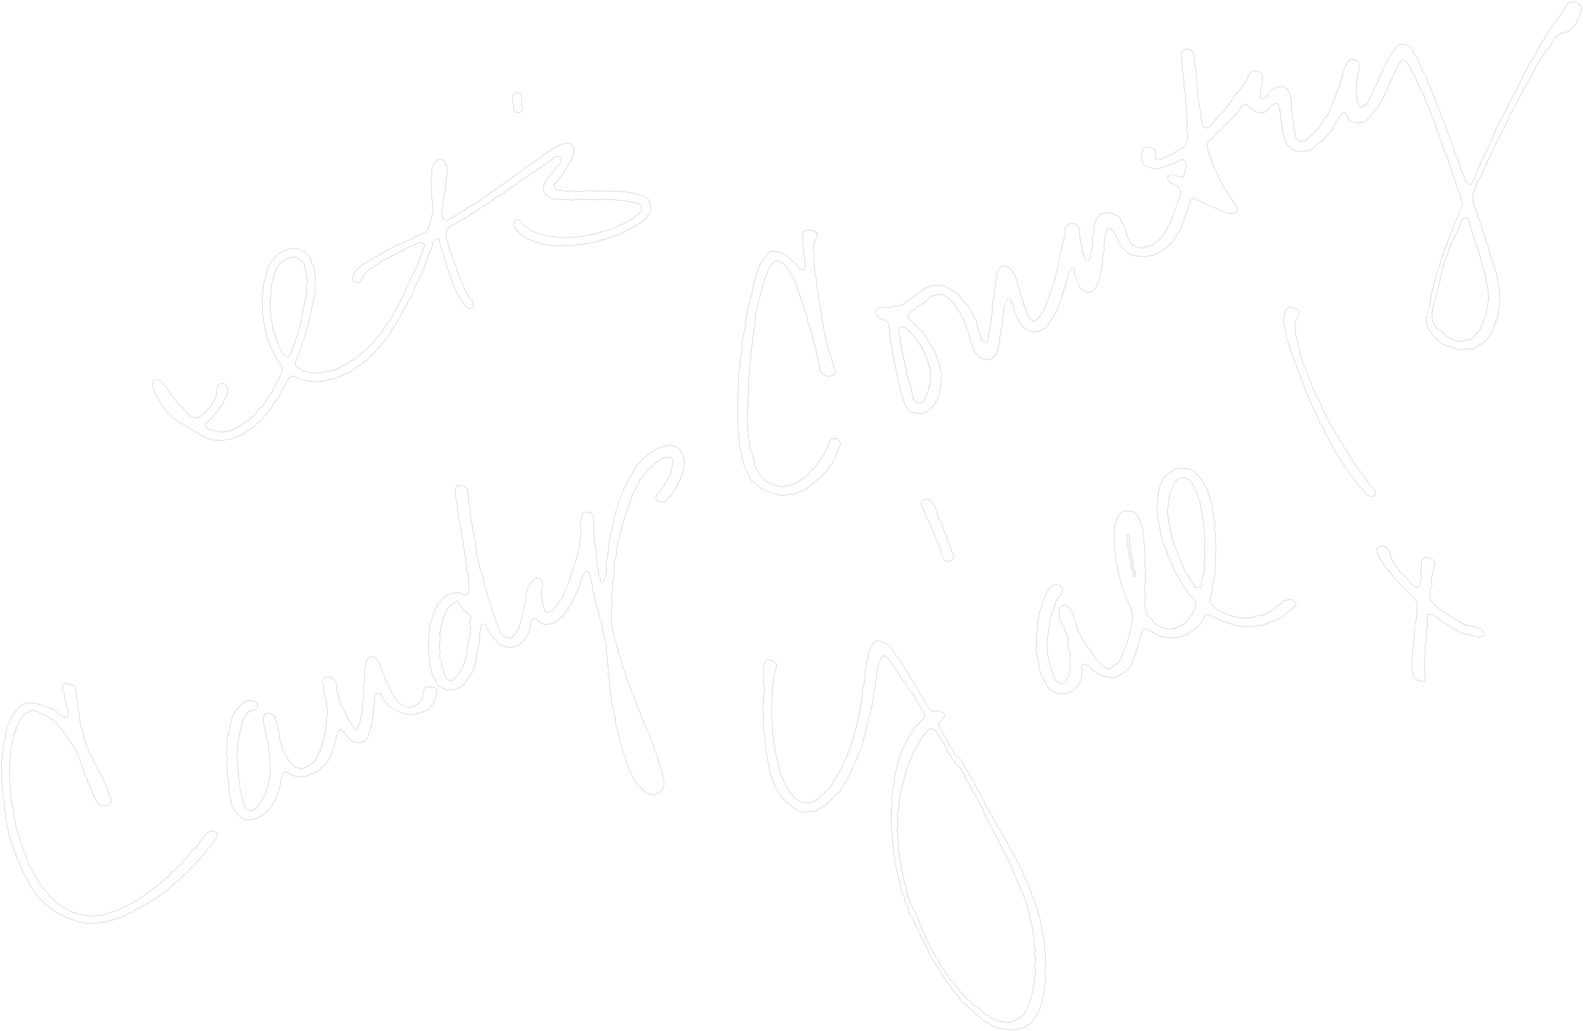 its candy country handwritten